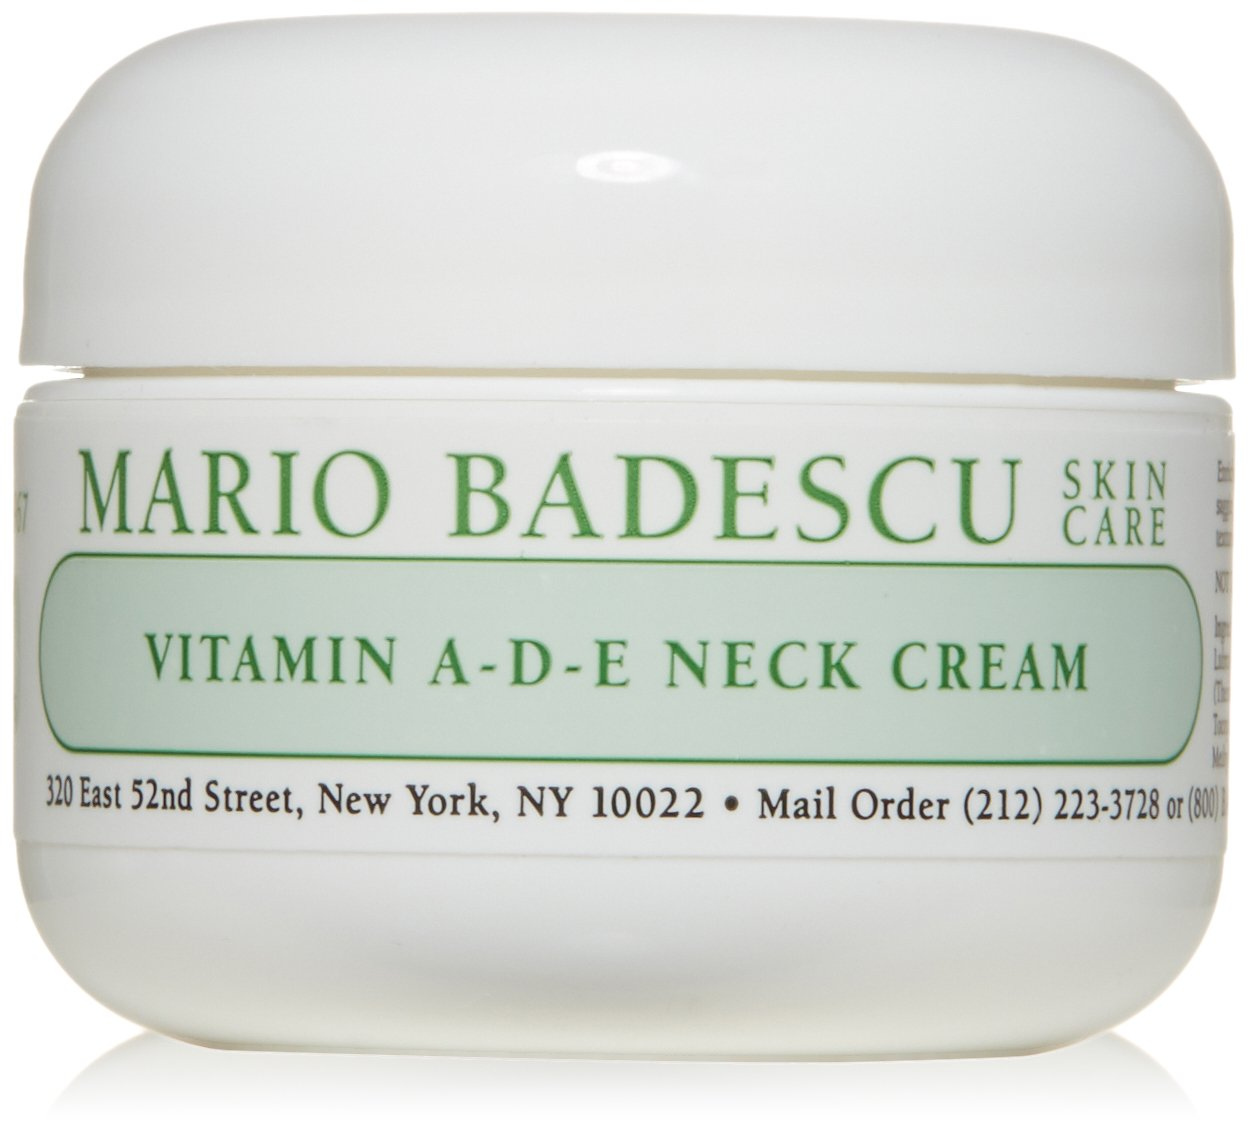 Mario Badescu Vitamin A-D-E Neck Cream, 1 oz. by Mario Badescu